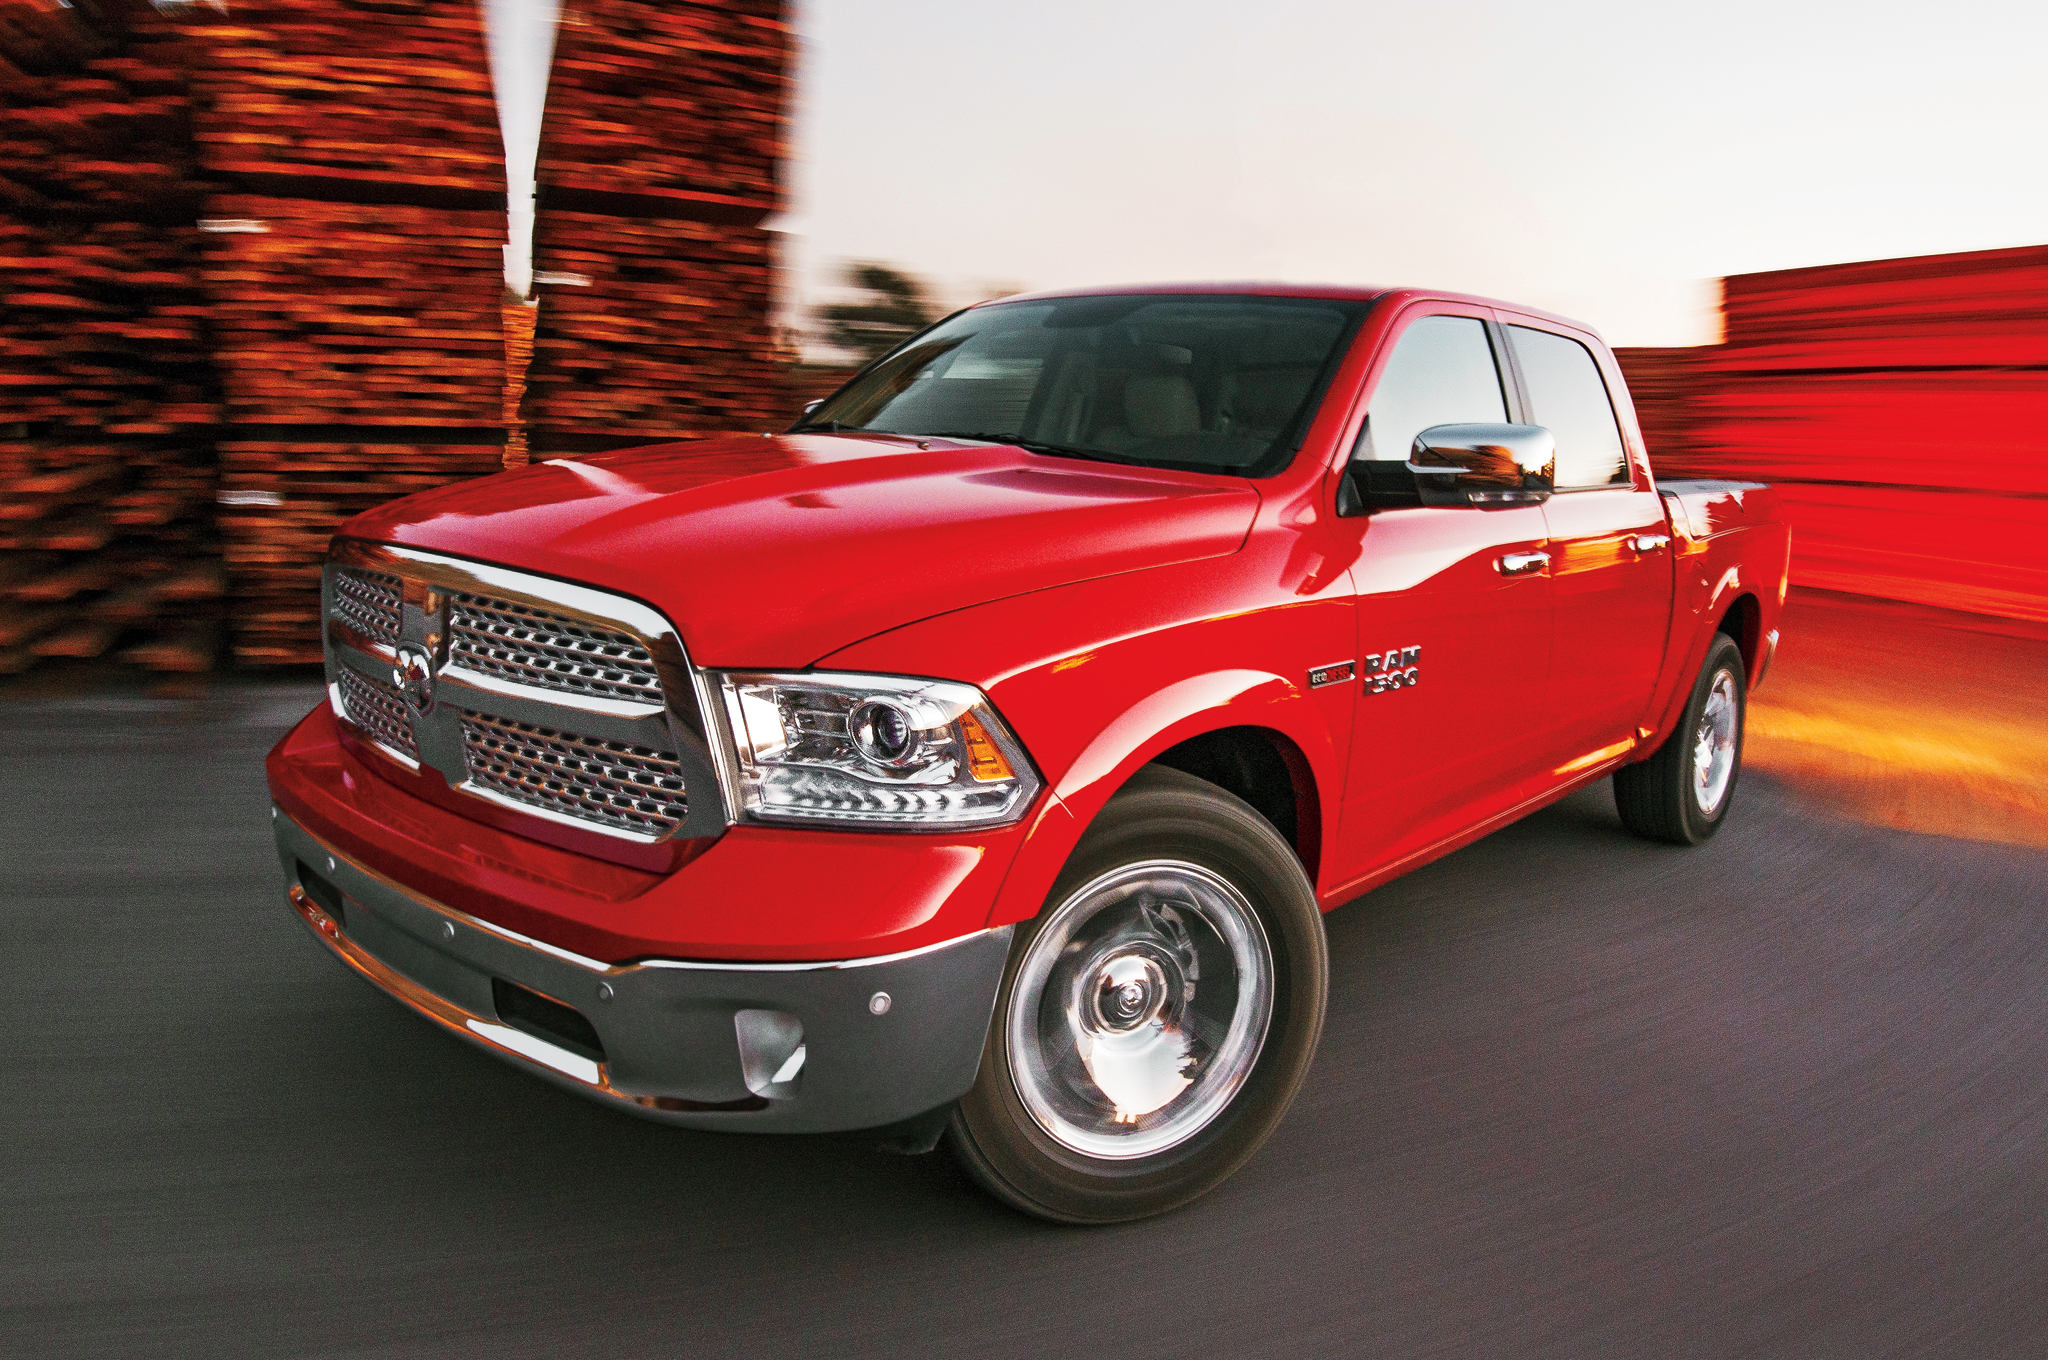 TOTD: Staying Power -- Ram 1500 EcoDiesel or Ford F-150 EcoBoost?